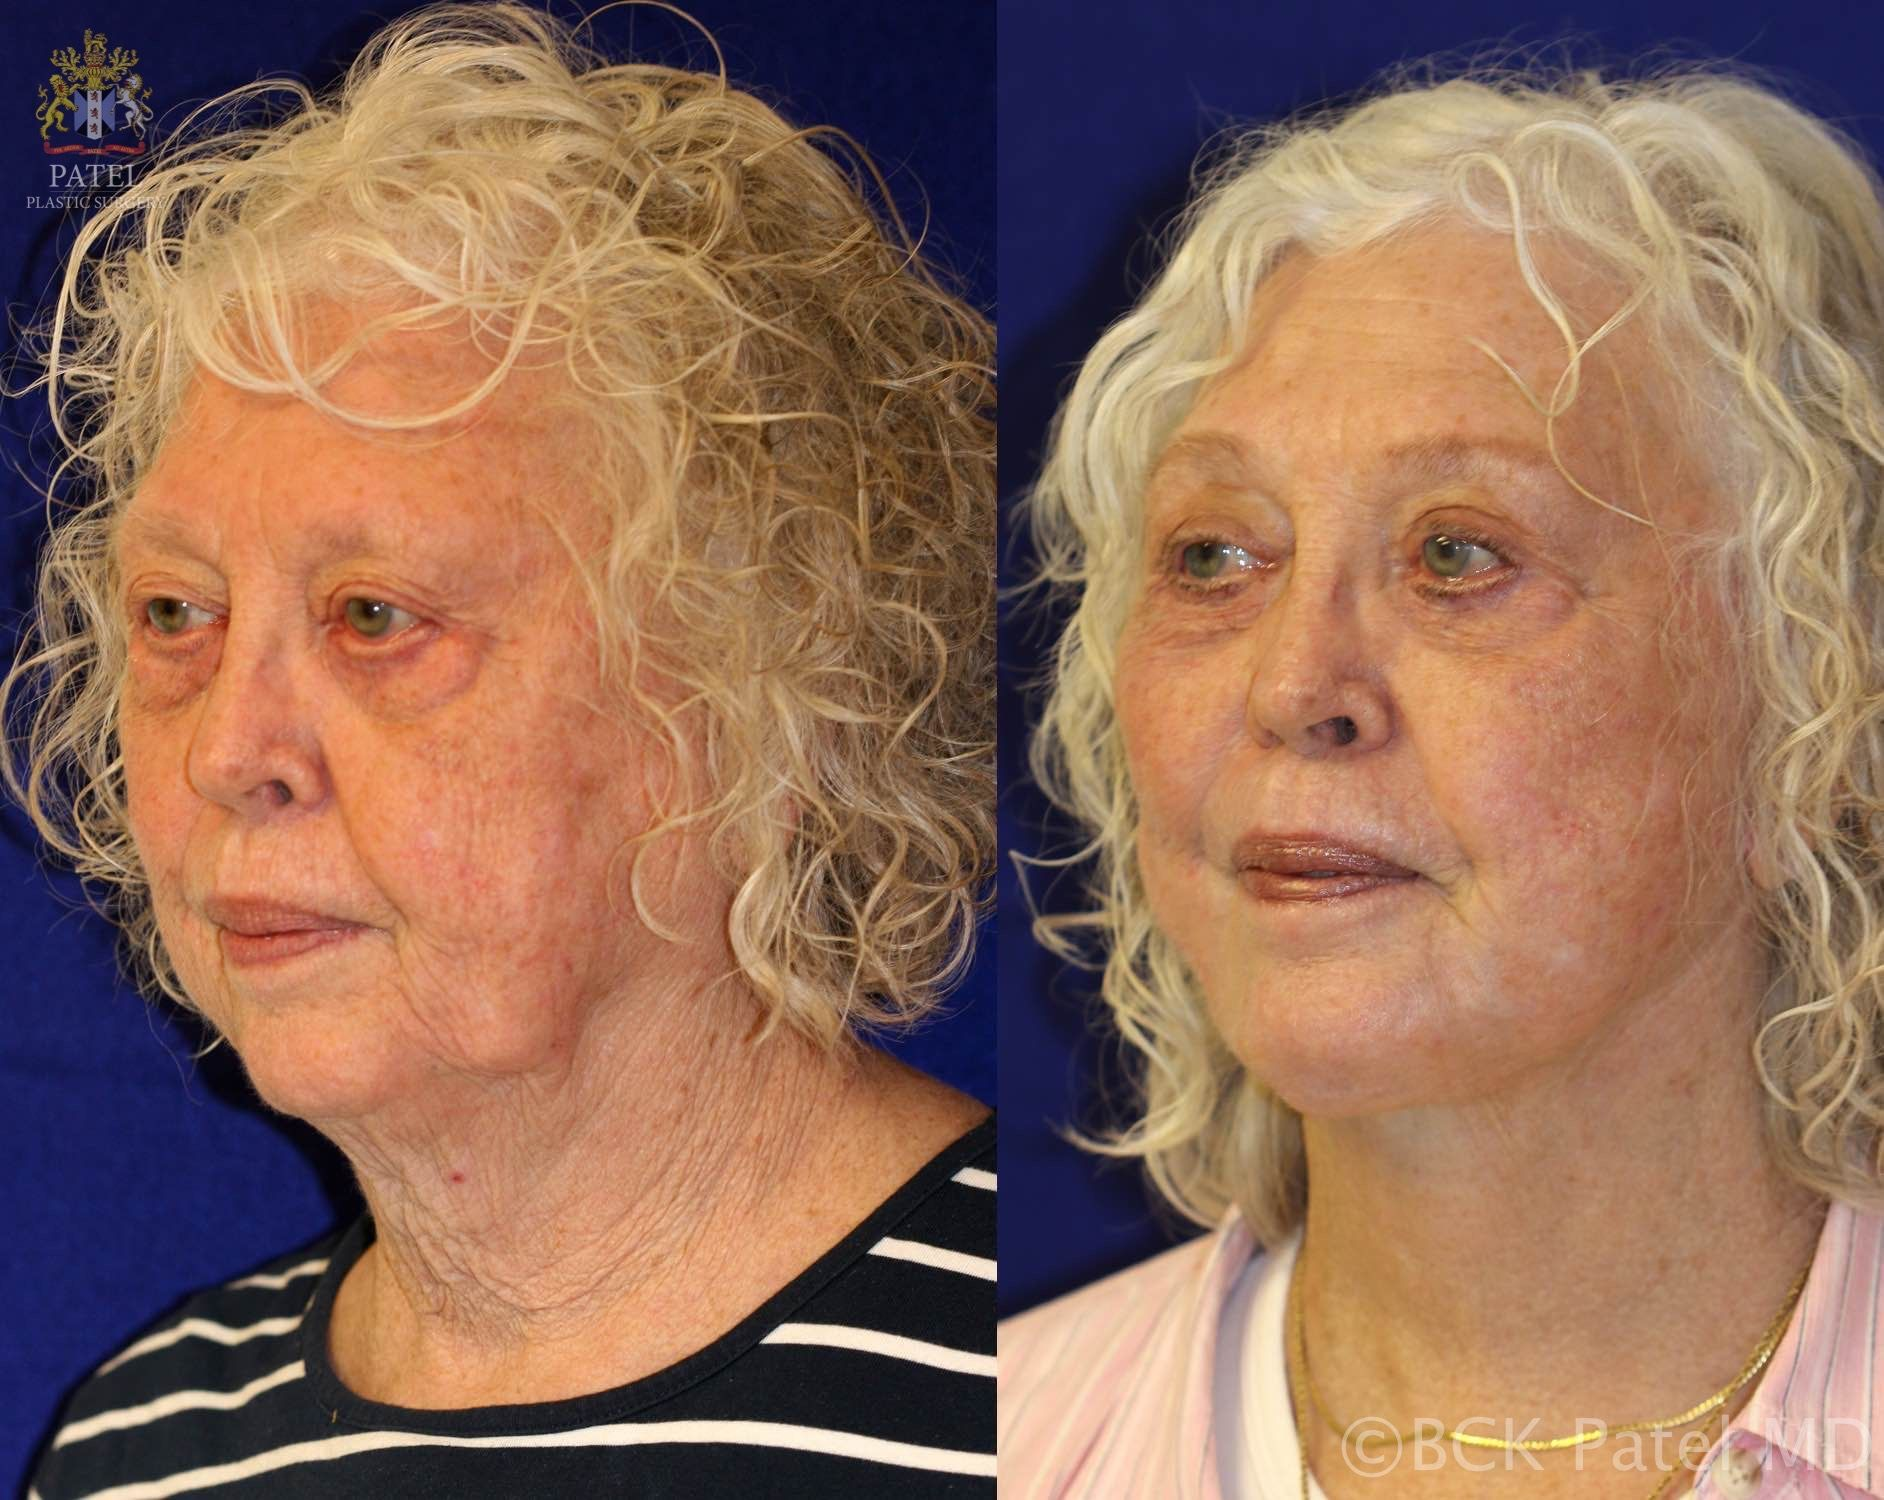 englishsurgeon.com These photos show the improvement possible with a full facelift or rhytidectomy together with fat grafts and the use of the CO2 laser and also augmentation of the chin and treatment of the lip lines and long upper lip. By BCK Patel MD, FRCS, Salt Lake City, St. George, London